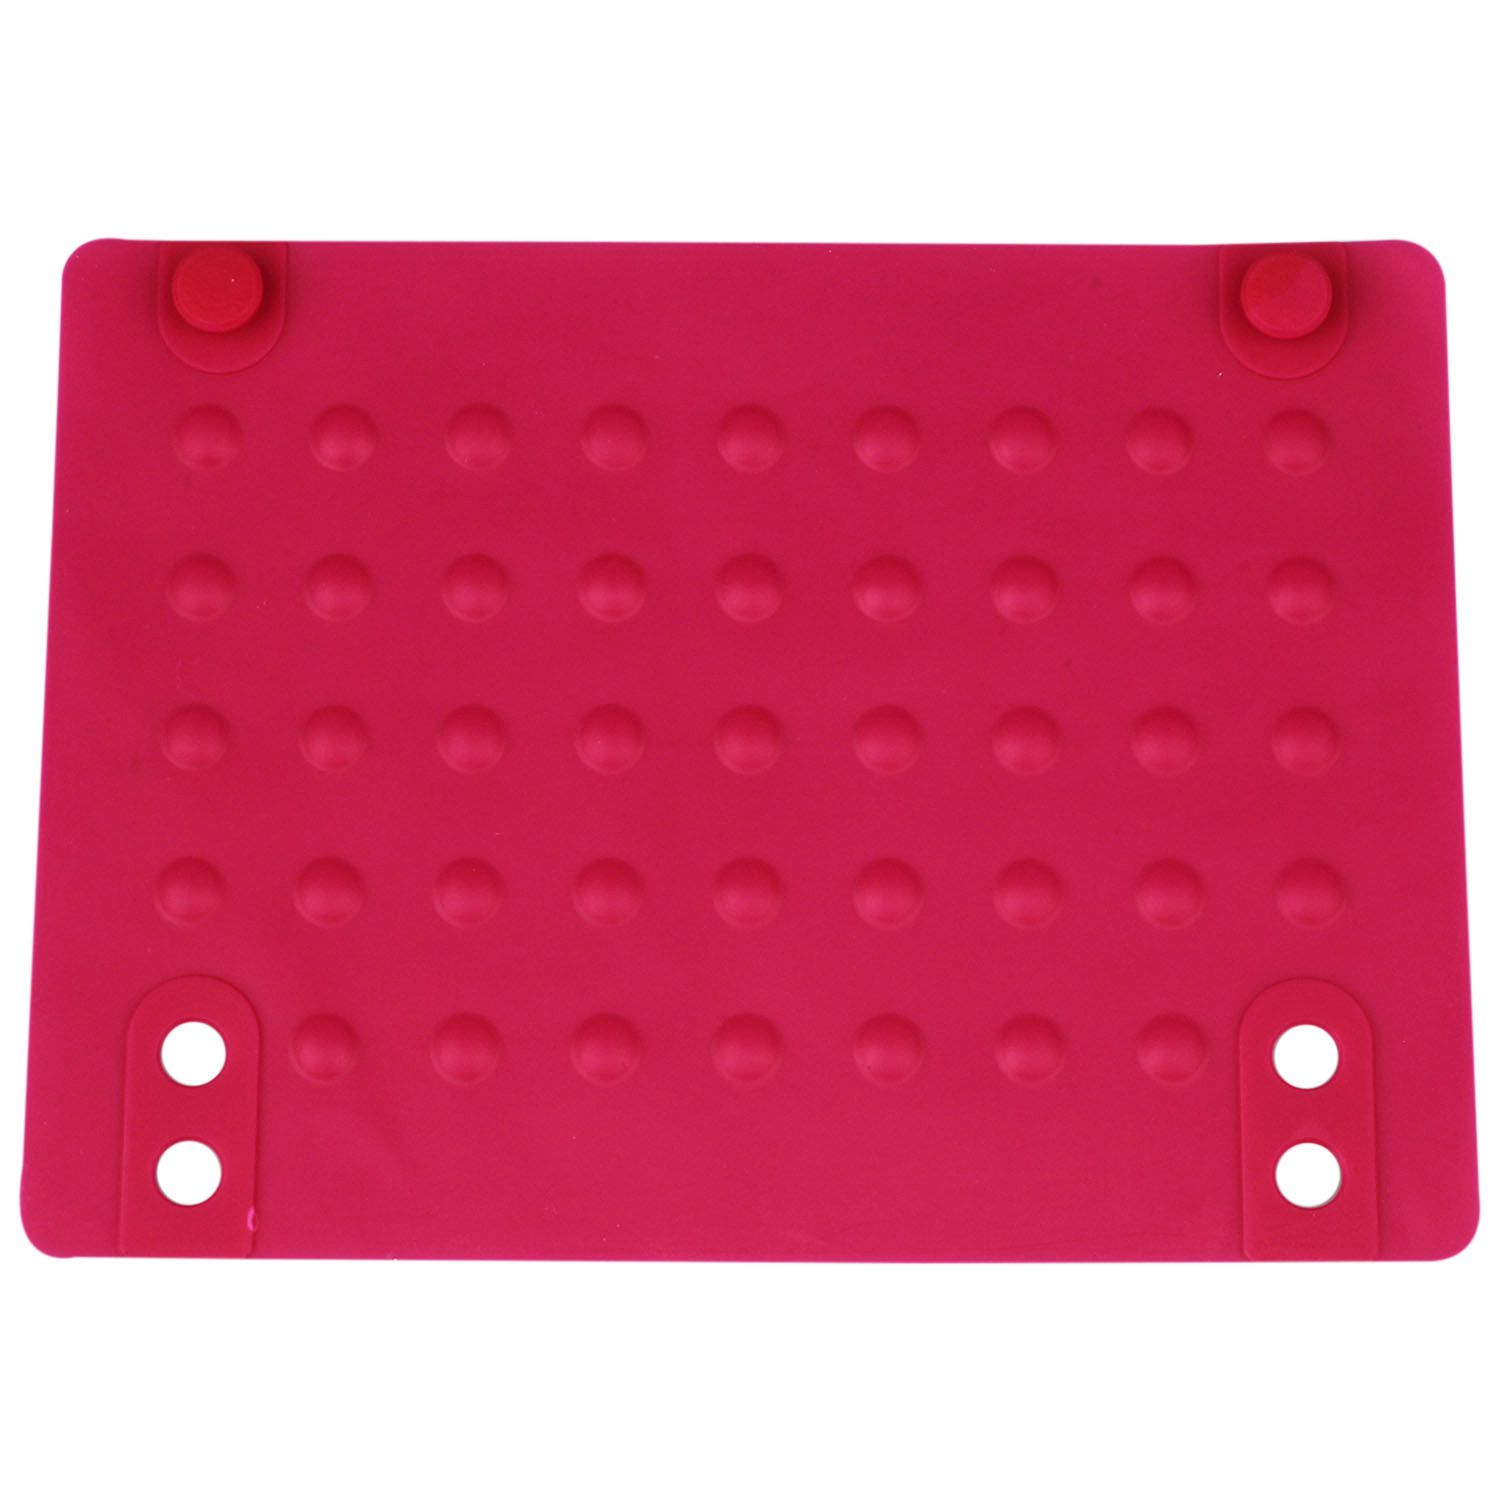 rose Red 215*165cm Silicone Heat Resistant Mat Anti-heat Mats For Hair Straightener Curling Iron